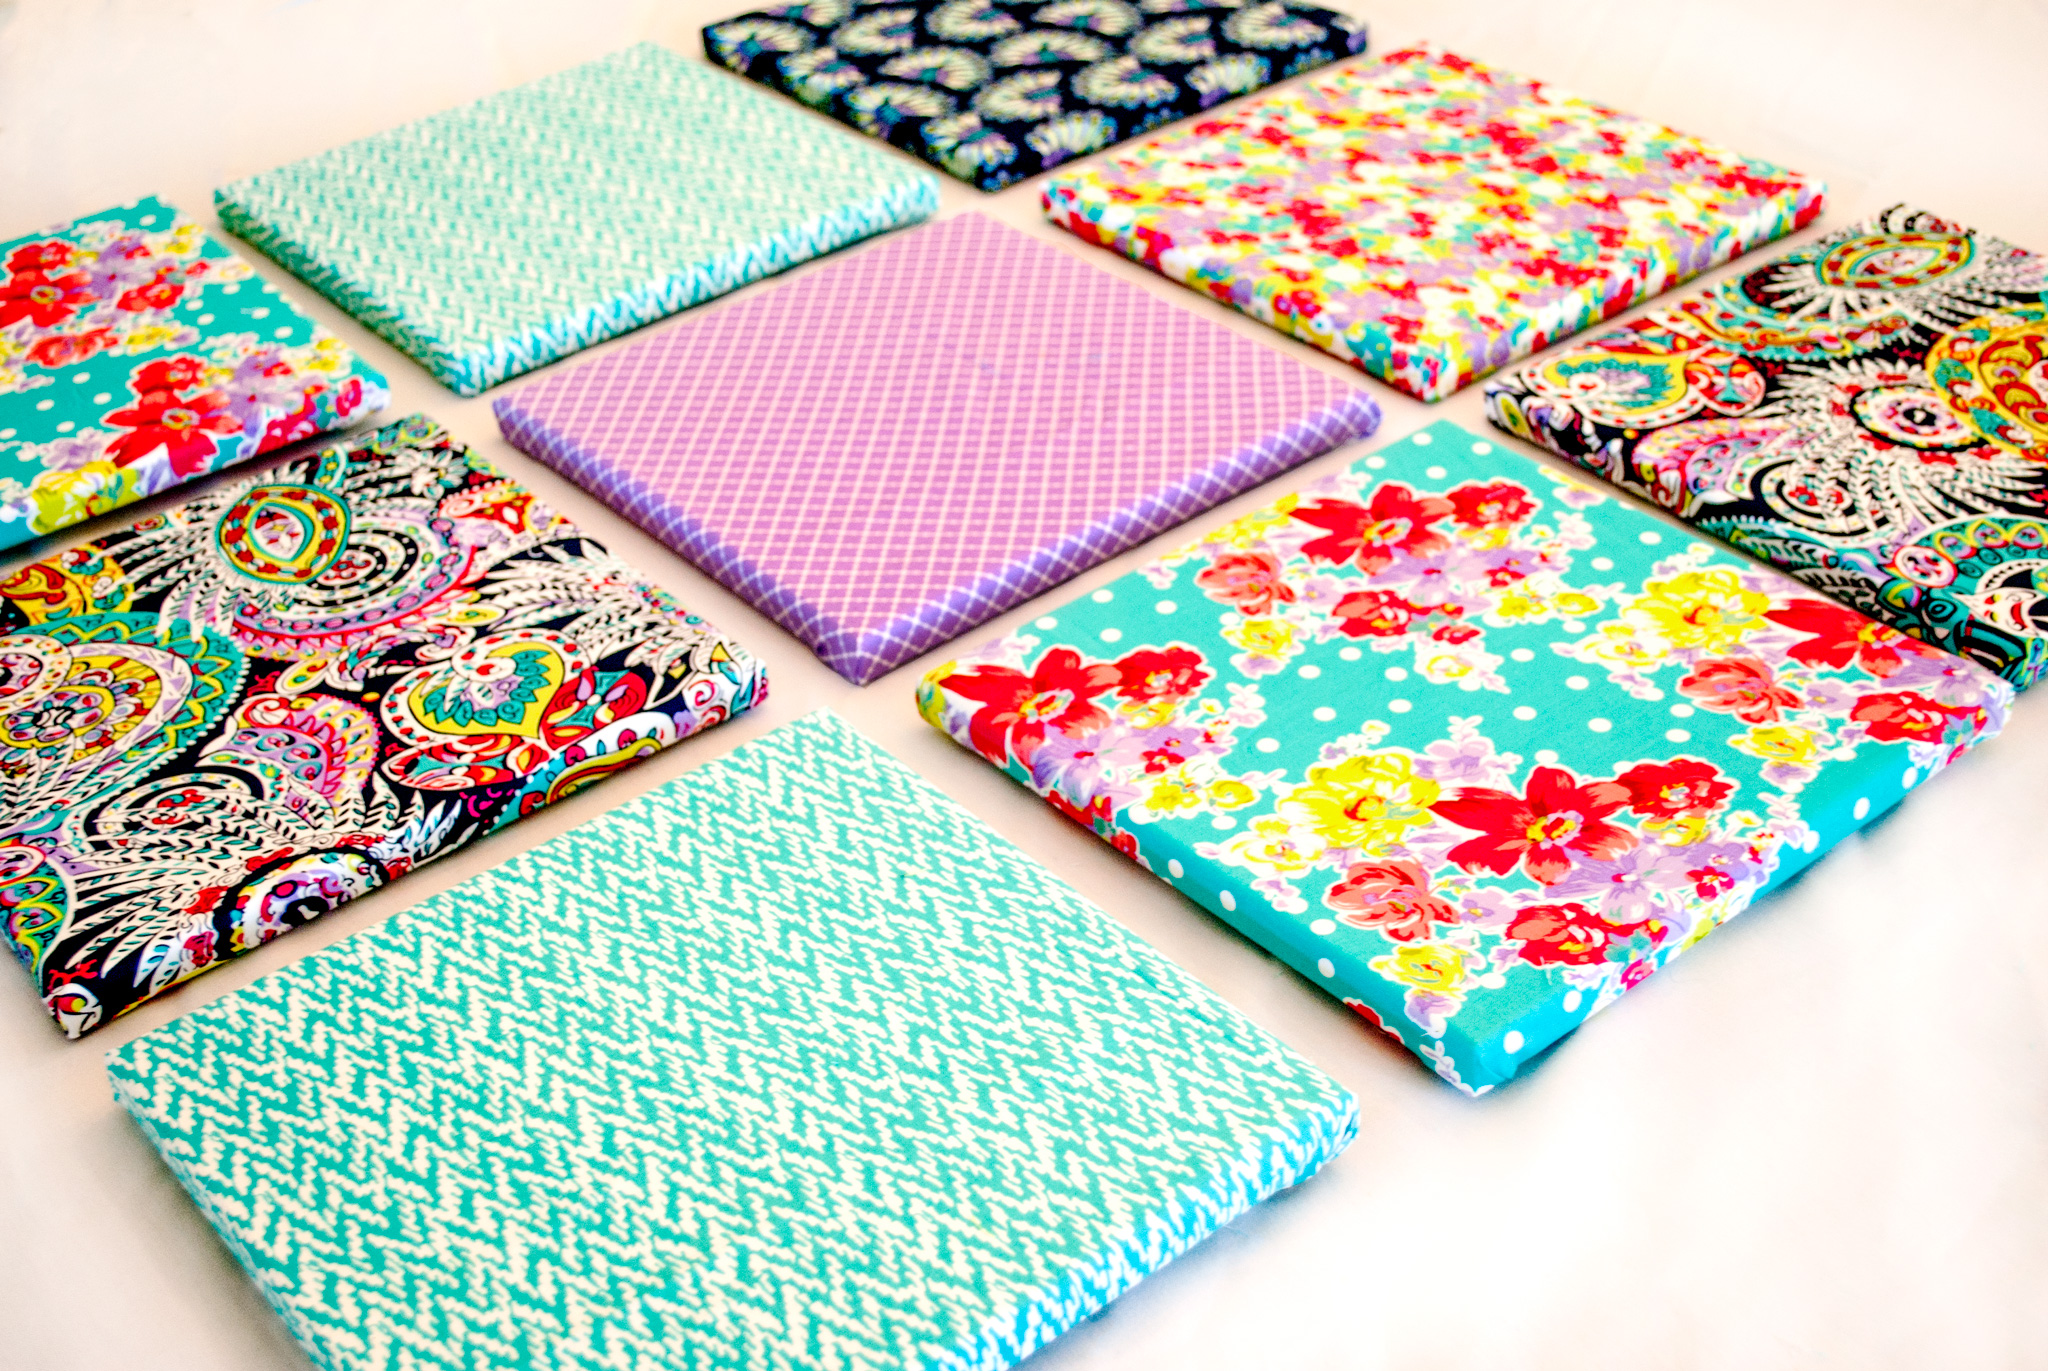 10 projects for upcycling fabric scraps idea digezt solutioingenieria Image collections